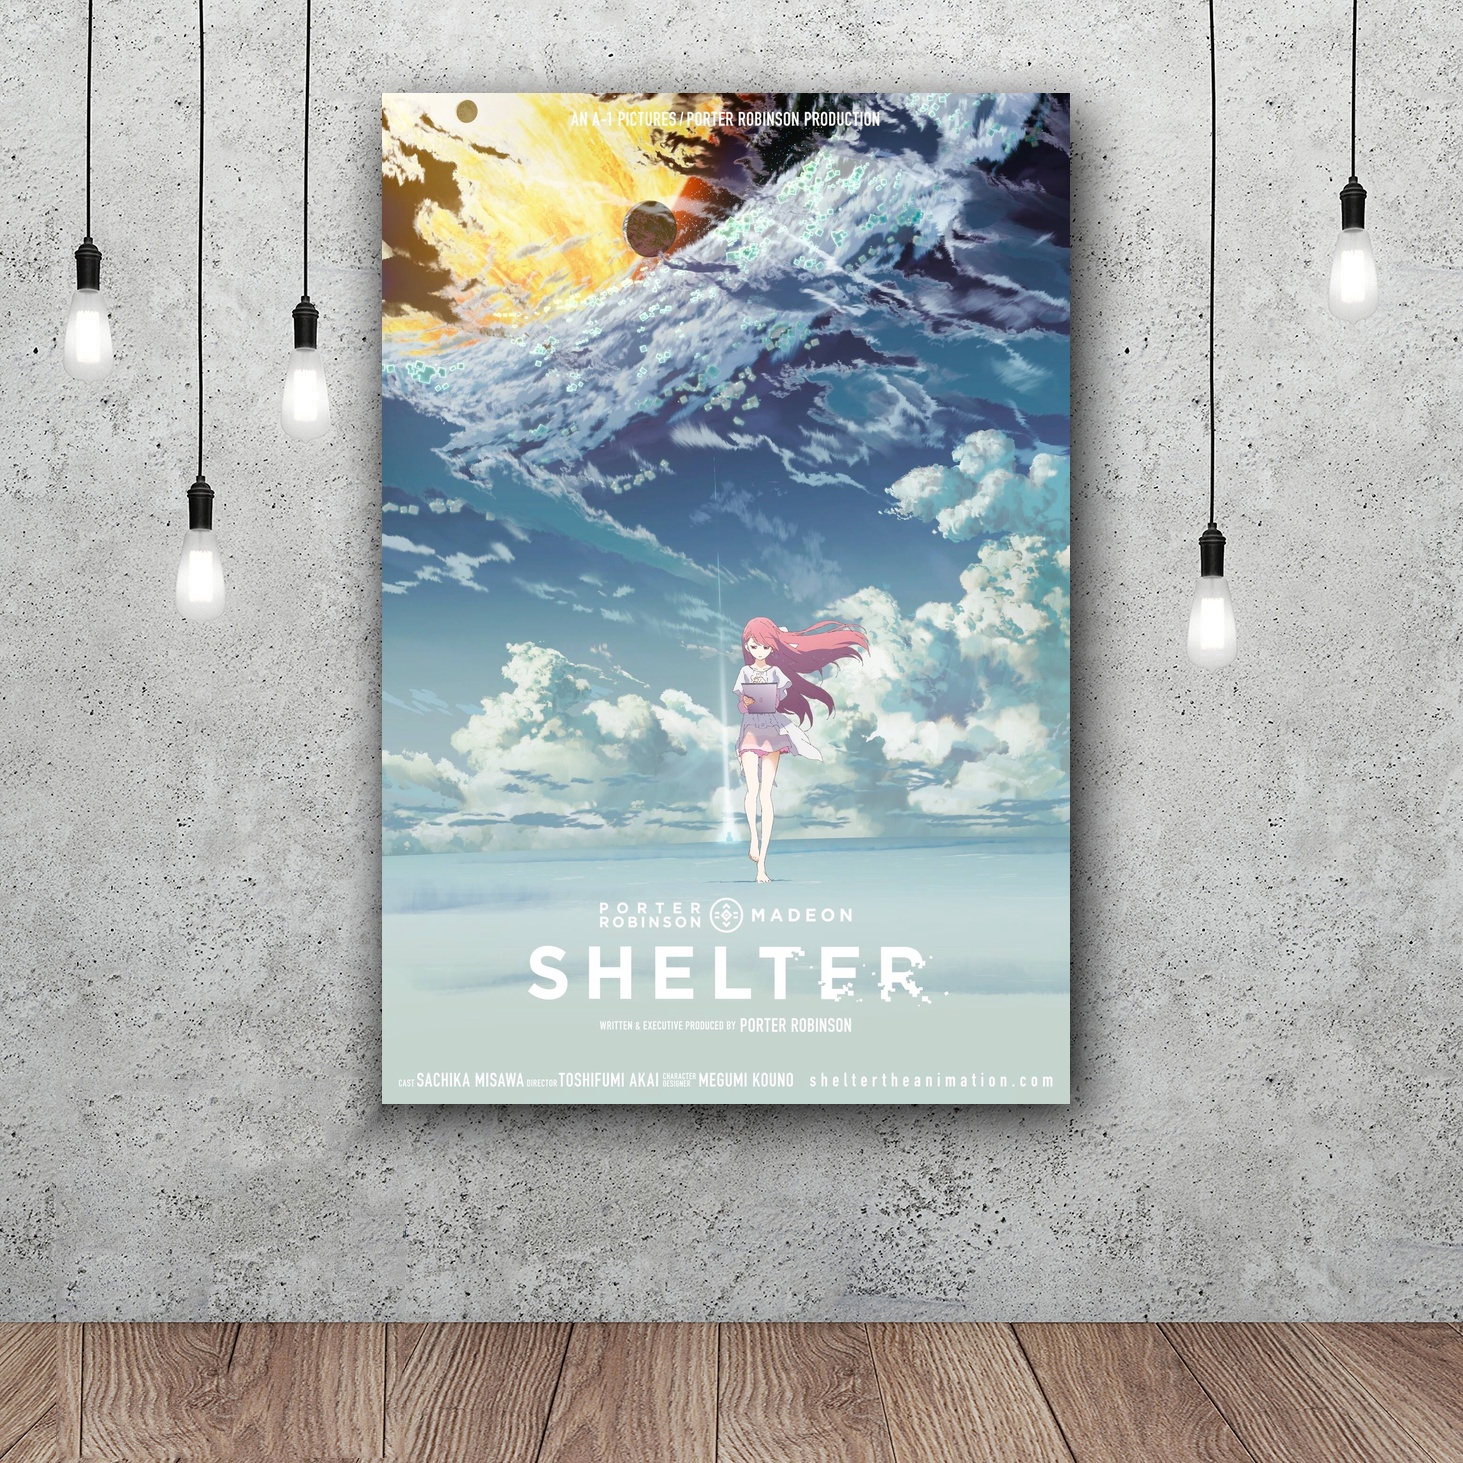 Shelter Porter Robinson Short Anime Movie Hot Art Poster Silk Light Canvas Painting Print For Home Decor Wall Picture In Calligraphy From